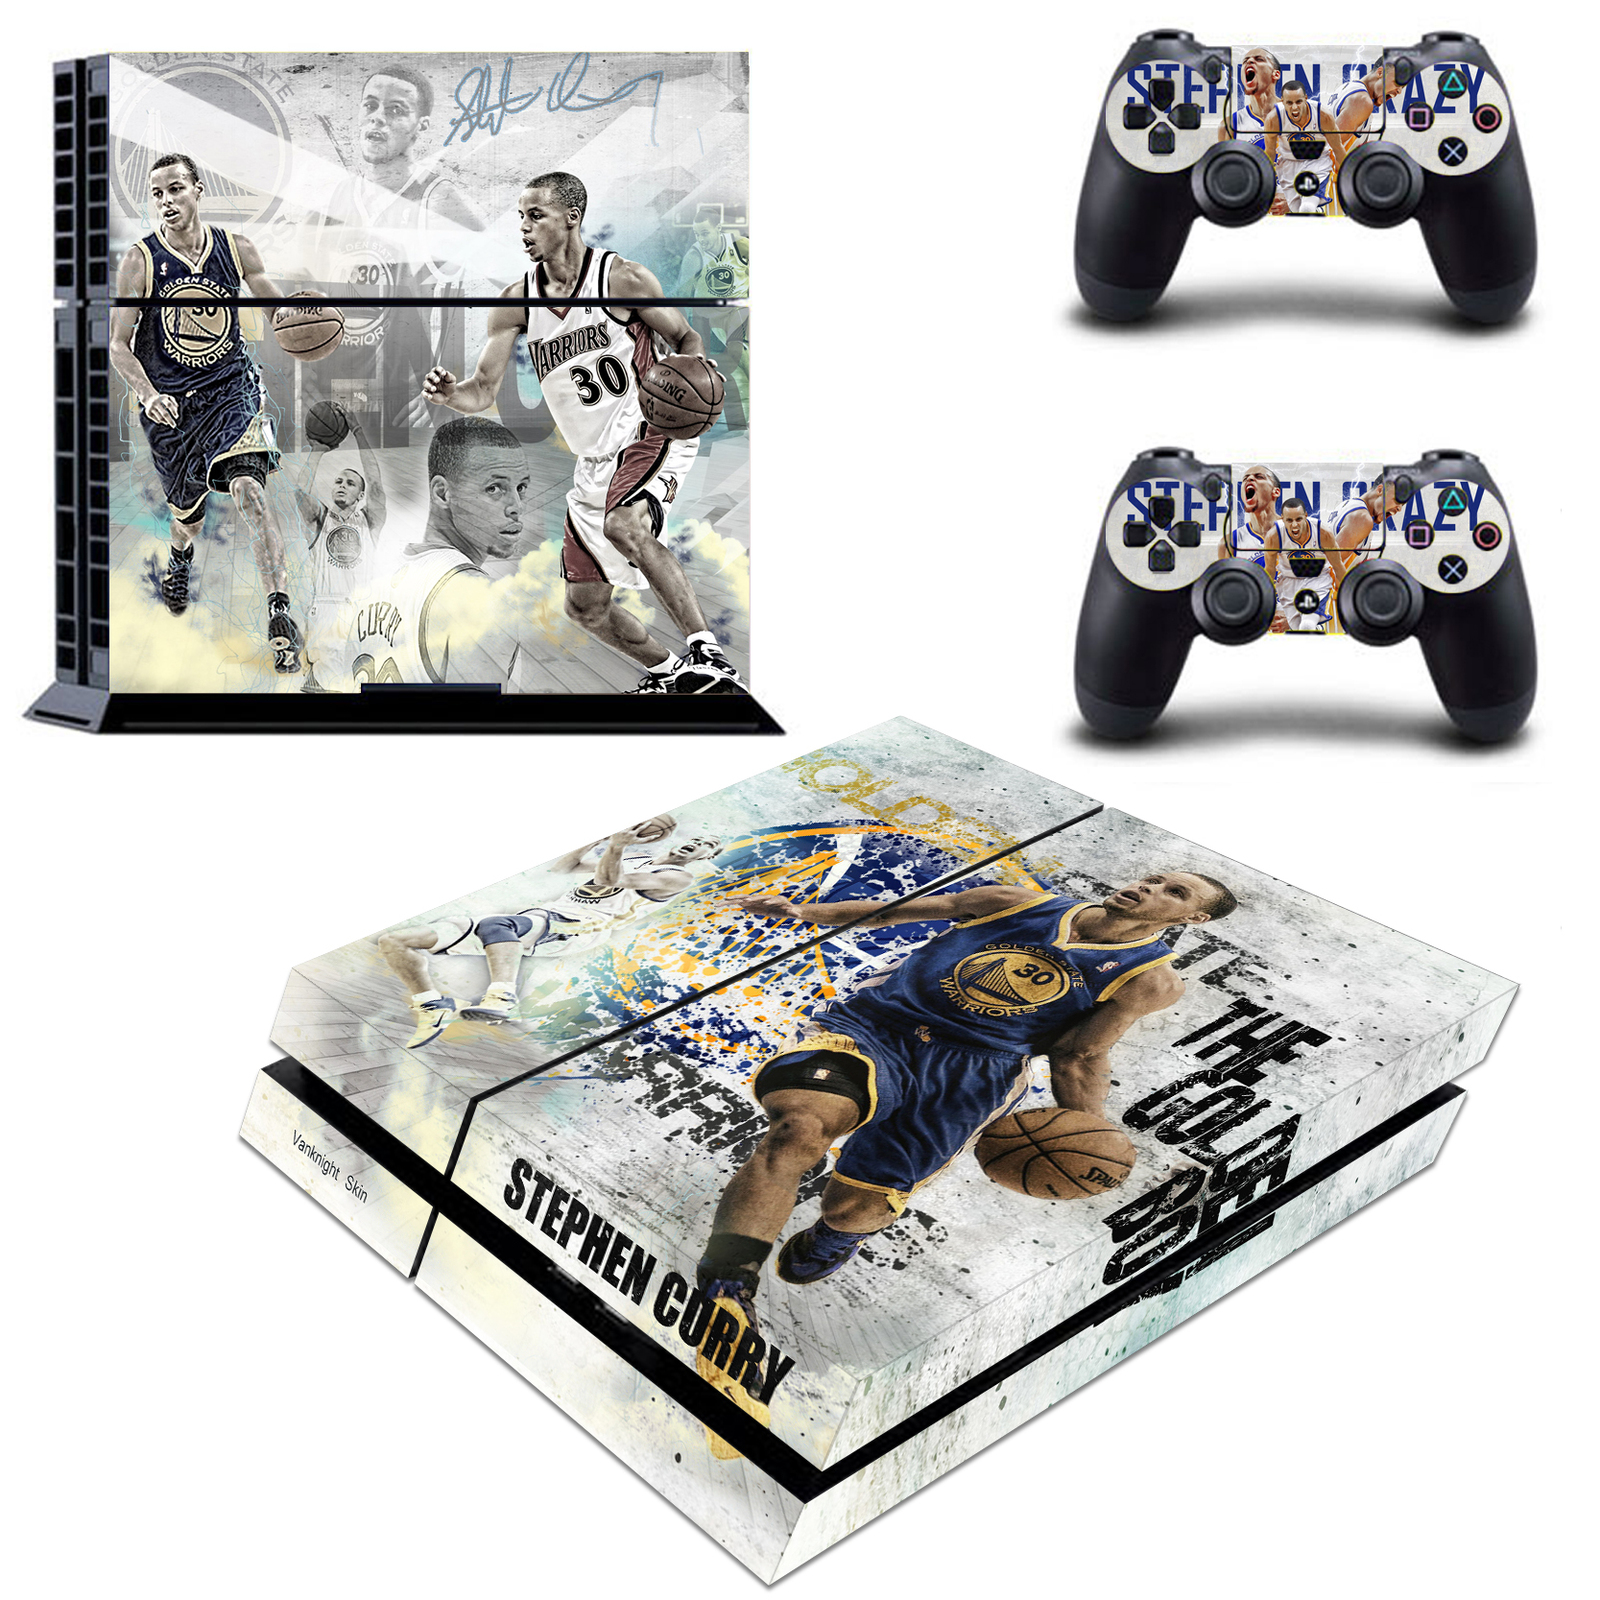 Video Game Accessories Ps4 Pro Console Skin Decal Nba Boston Celtics Vinyl Stickers Decals Covers Wrap Terrific Value